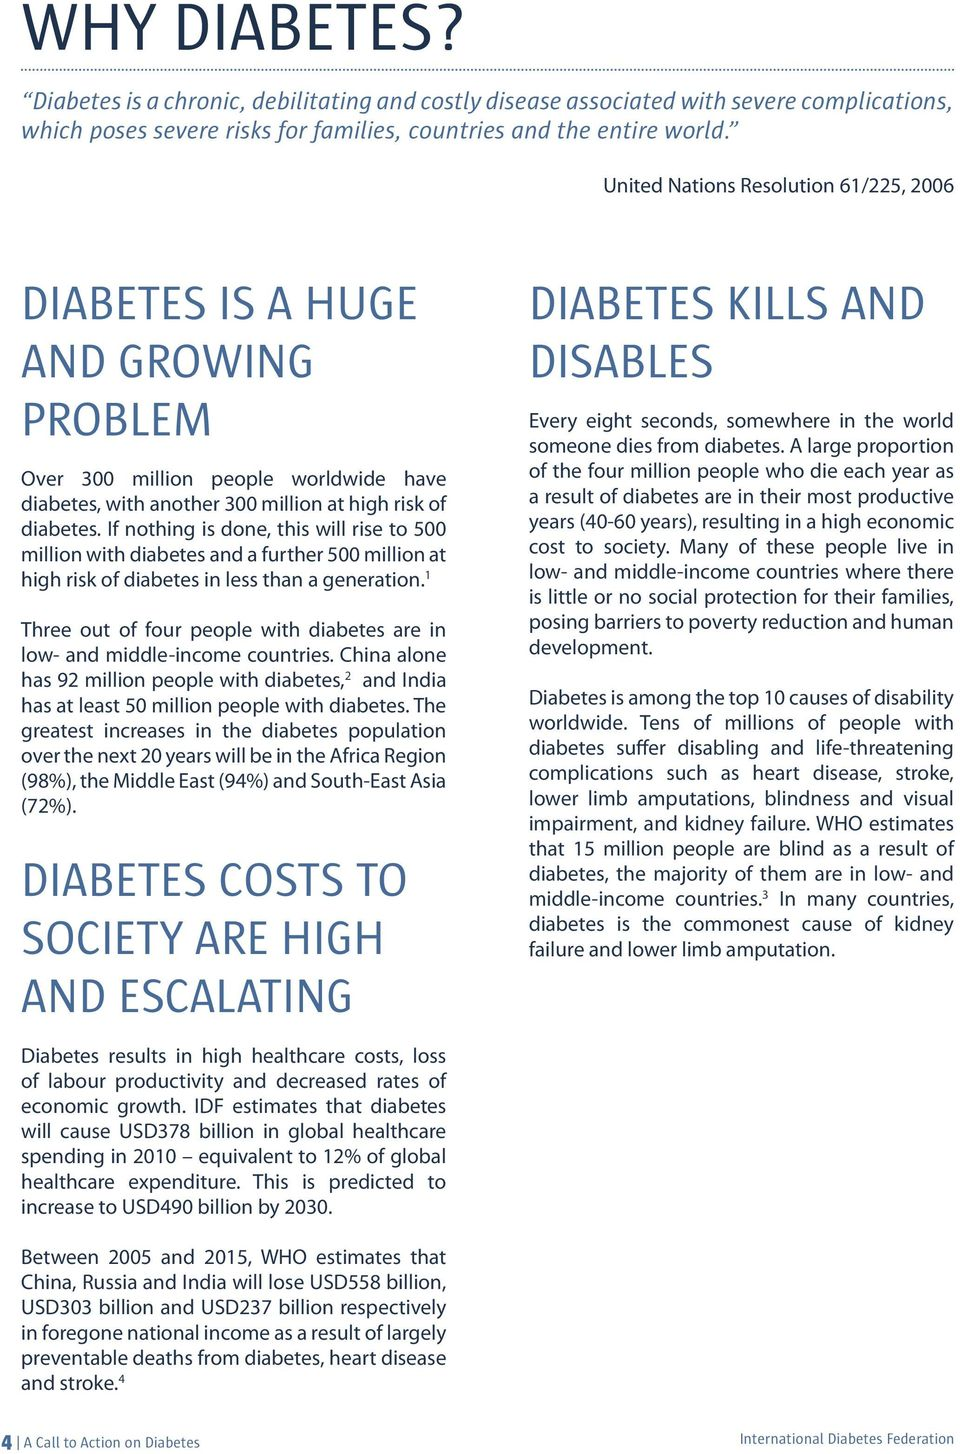 If nothing is done, this will rise to 500 million with diabetes and a further 500 million at high risk of diabetes in less than a generation.